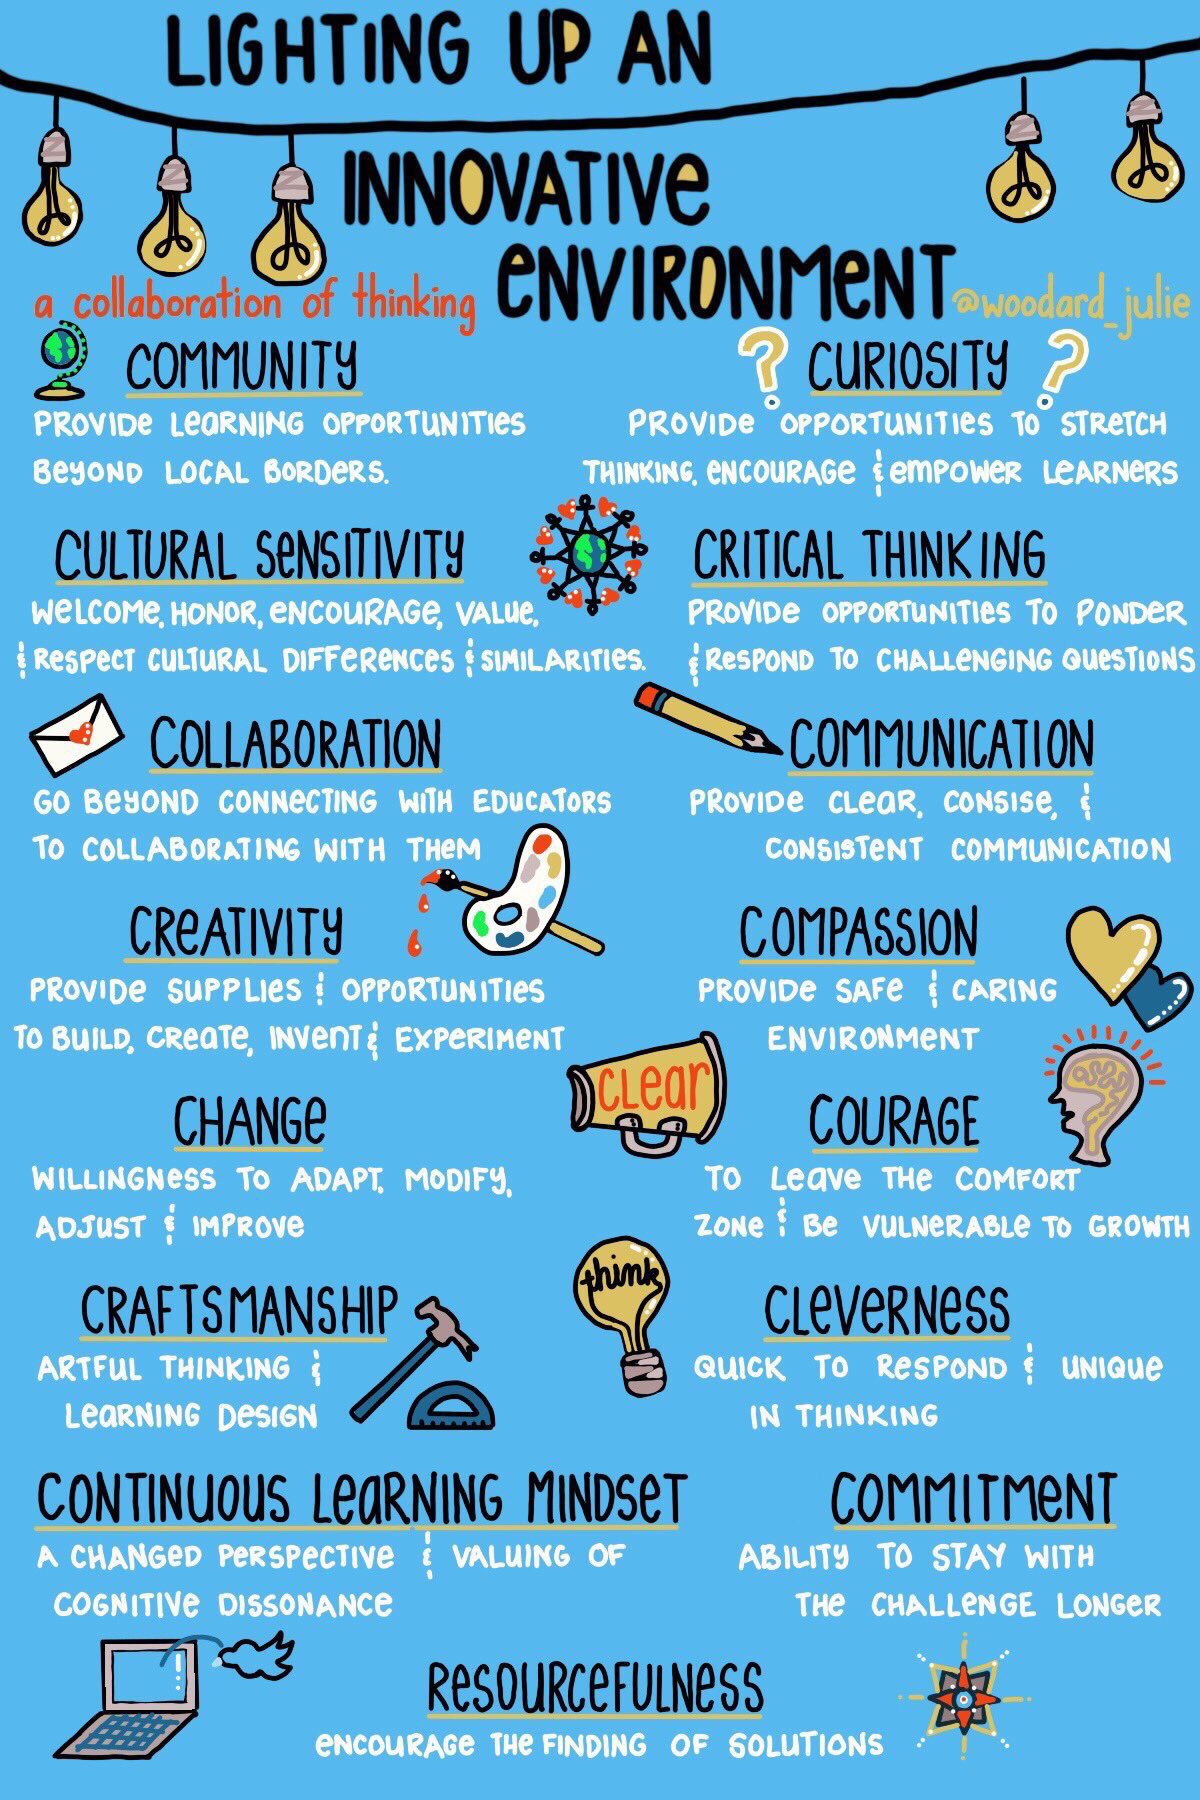 15 Ways to Light Up An Innovative Environment 💡🌺👥🌏🚀🎨💻 (by @woodard_julie) #edchat #education #satchat #edtech #ukedchat #mathchat #aussieED https://t.co/KES39BNczq